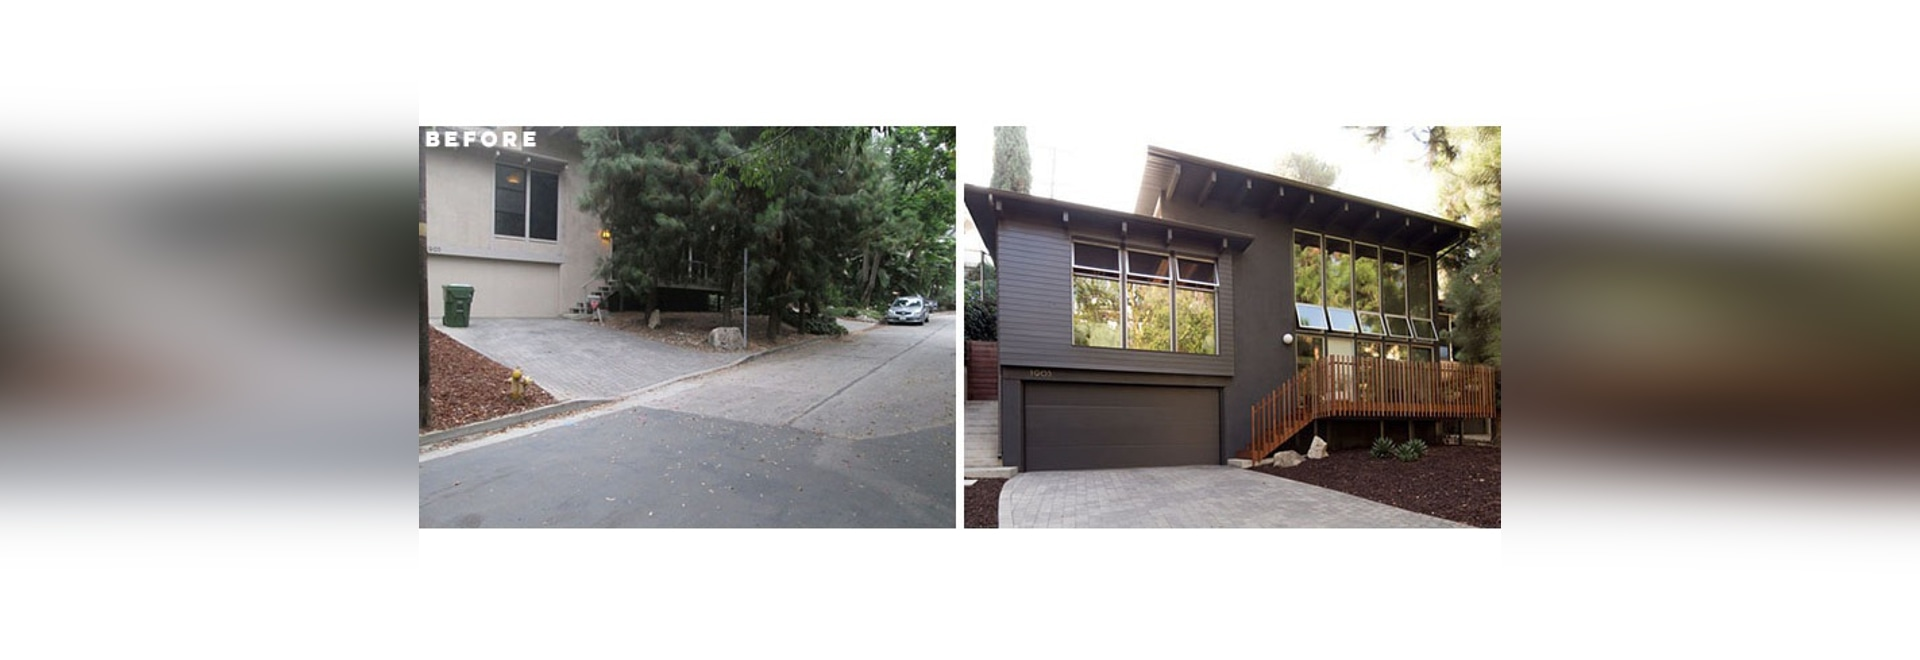 Image of: Before After This Mid Century Modern House In Los Angeles Received A Complete Renovation Los Angeles Ca Usa